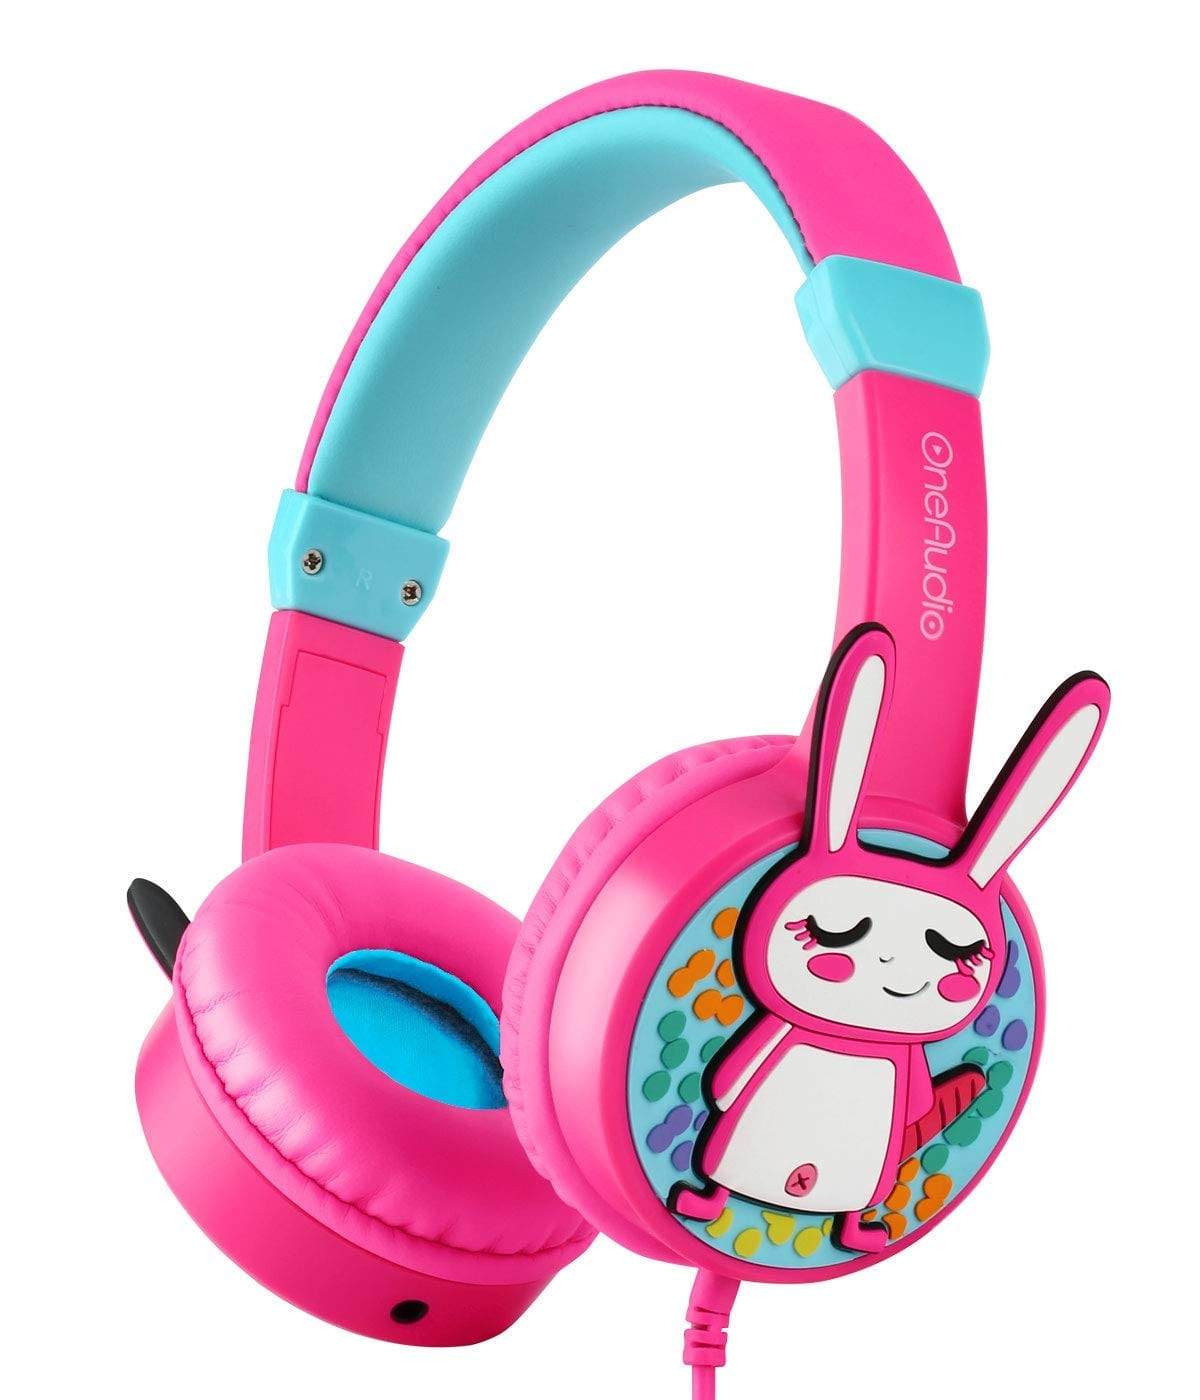 OneAudio 85dB Volume Limited Headsets Compatible for/Toddler/Girls/Kindle/Airplane/iPhone $8.44+FS